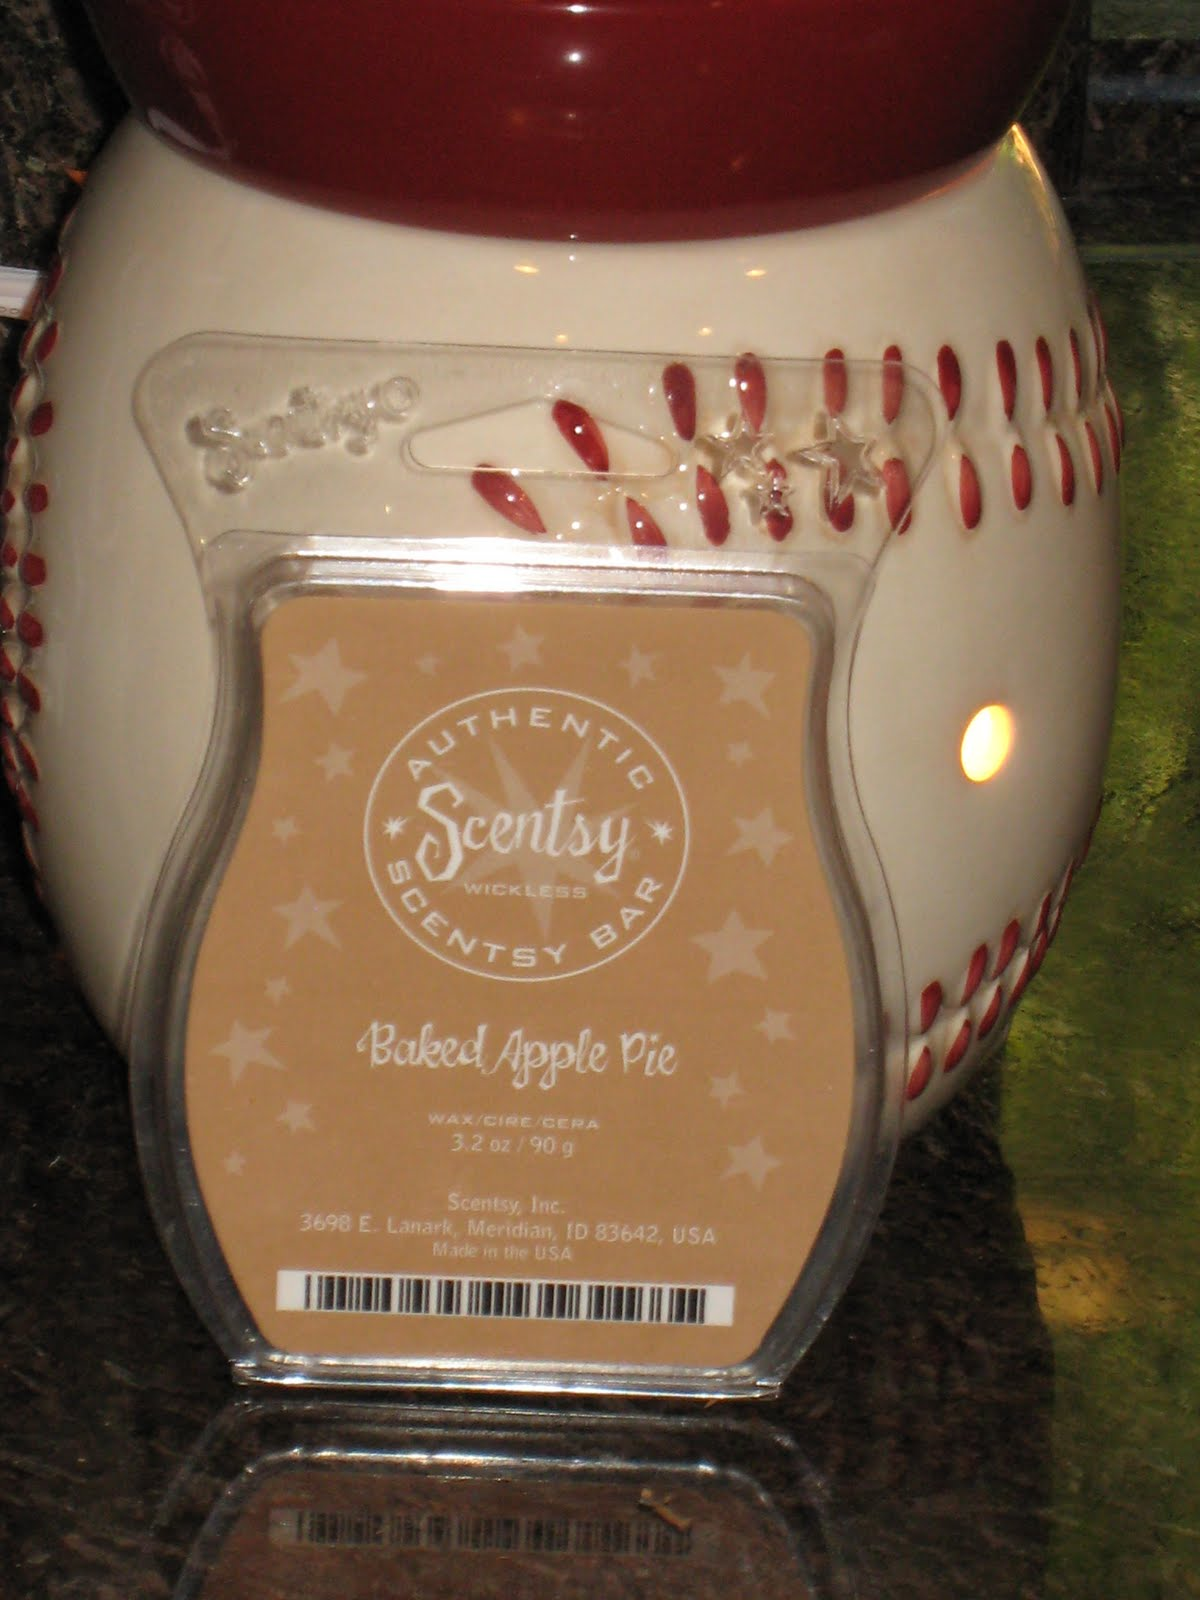 Scentsy Home Party Ideas http://little-yayas.com/2010/05/scentsy-review-giveaway.html